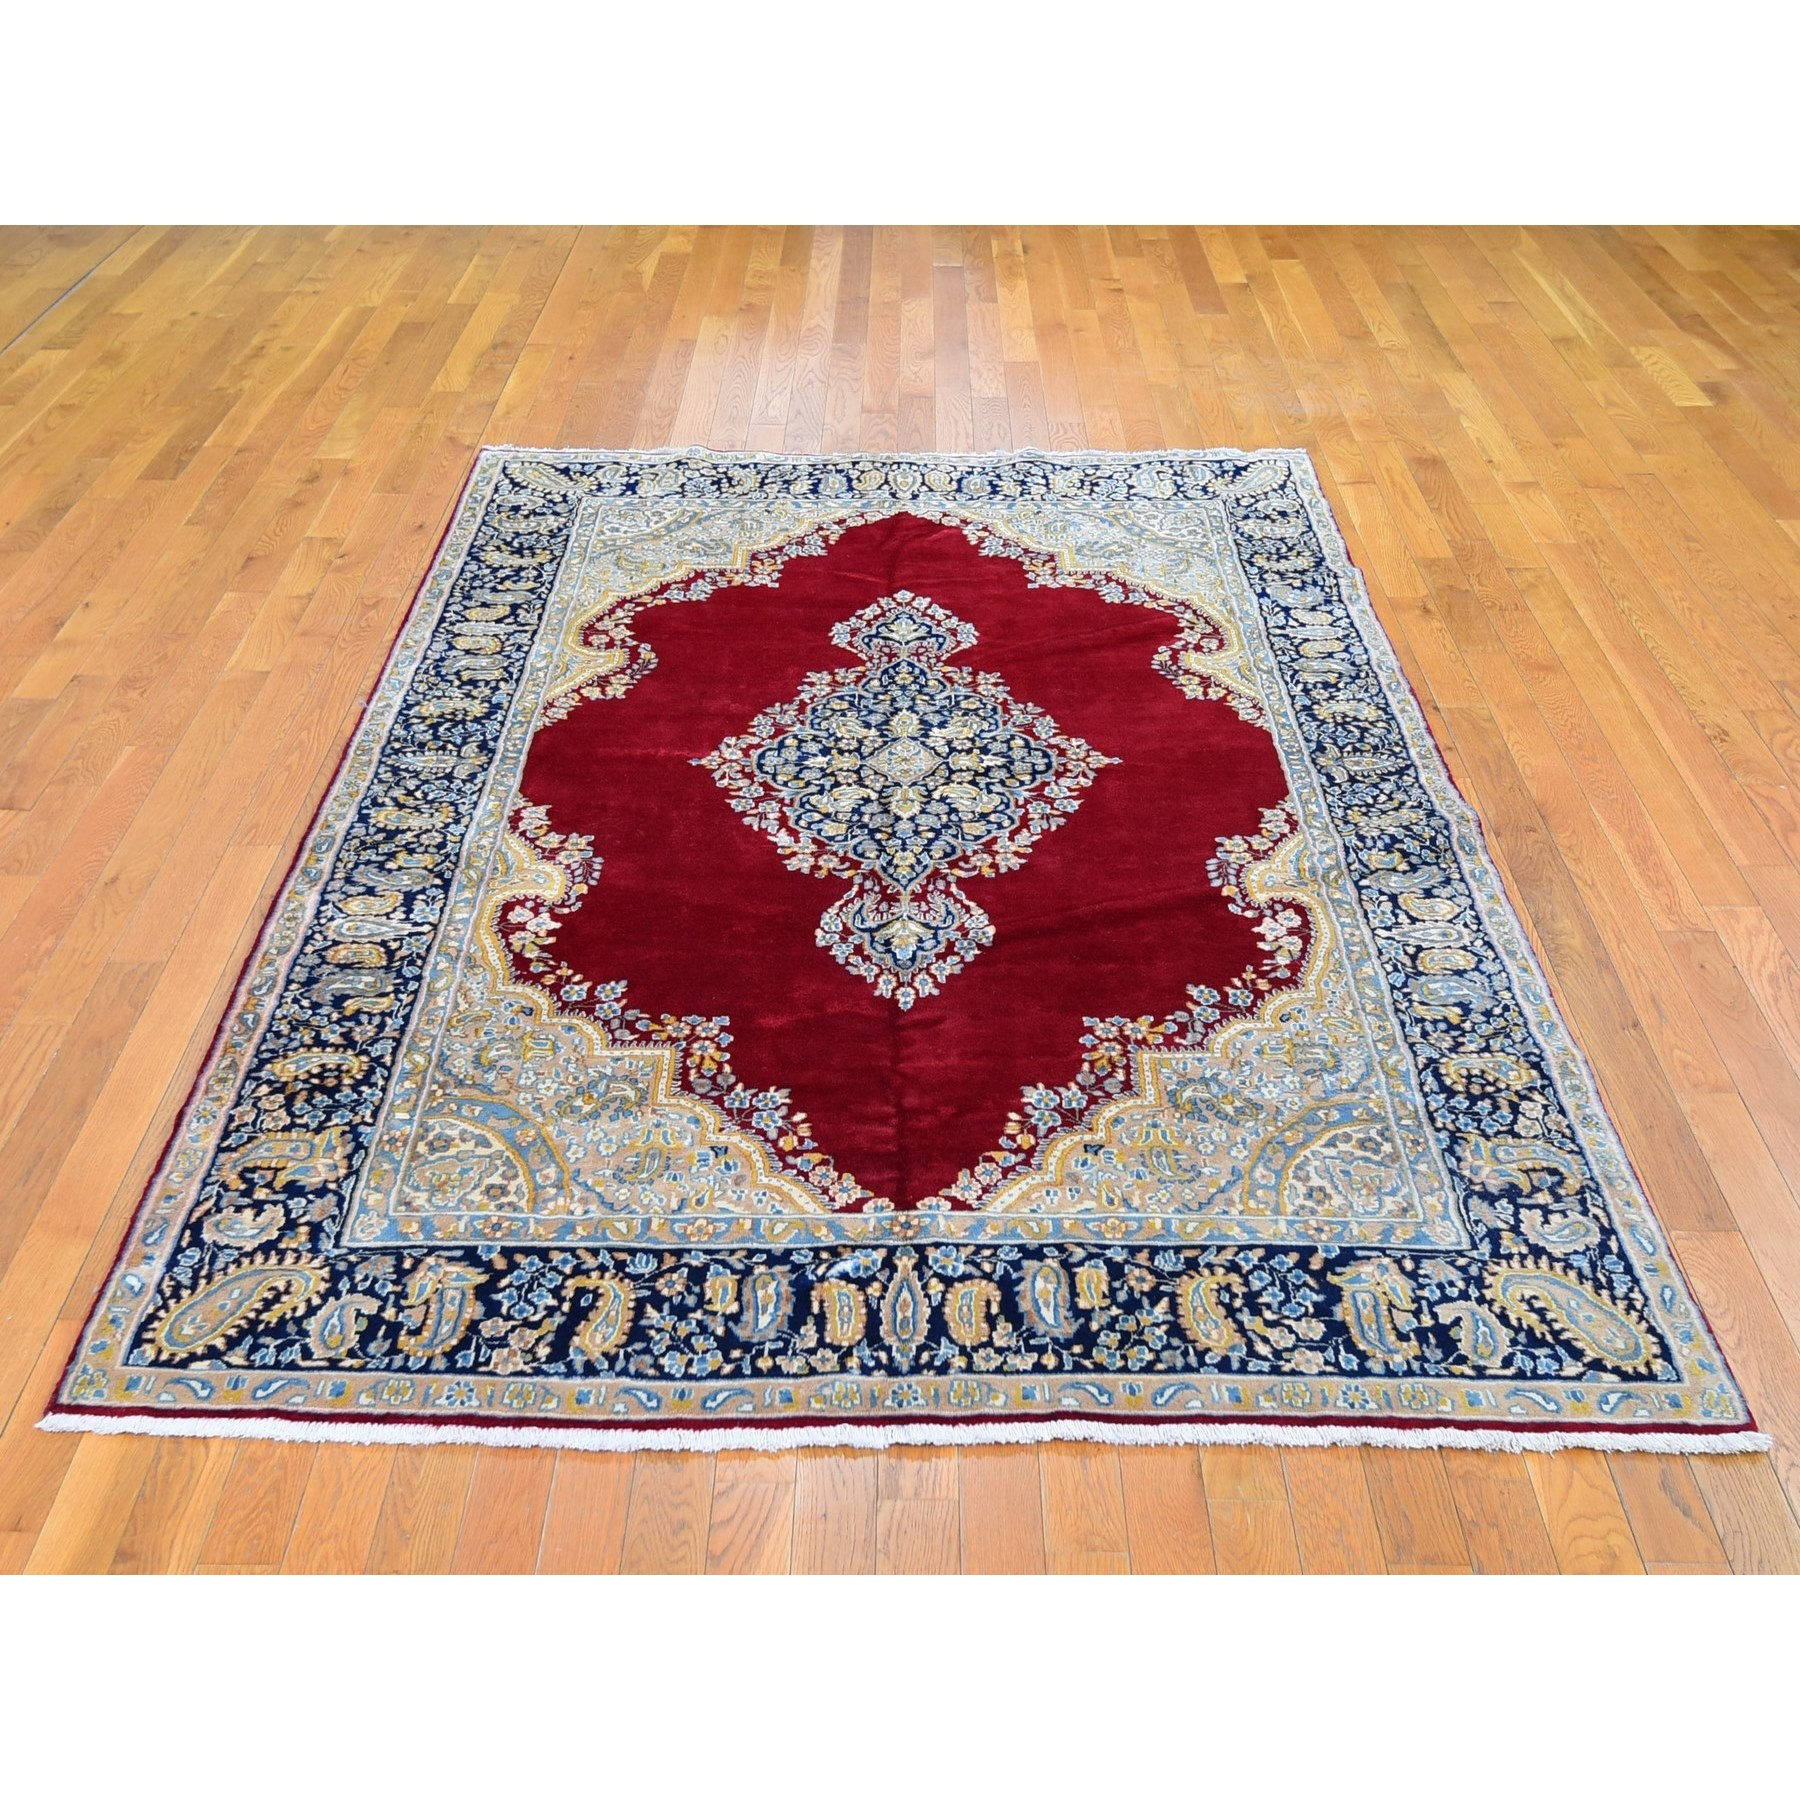 "5'10""x9'2"" Red Vintage Persian Kerman Medallion Open Field Pure Wool One From a Pair Hand Woven Oriental Rug"